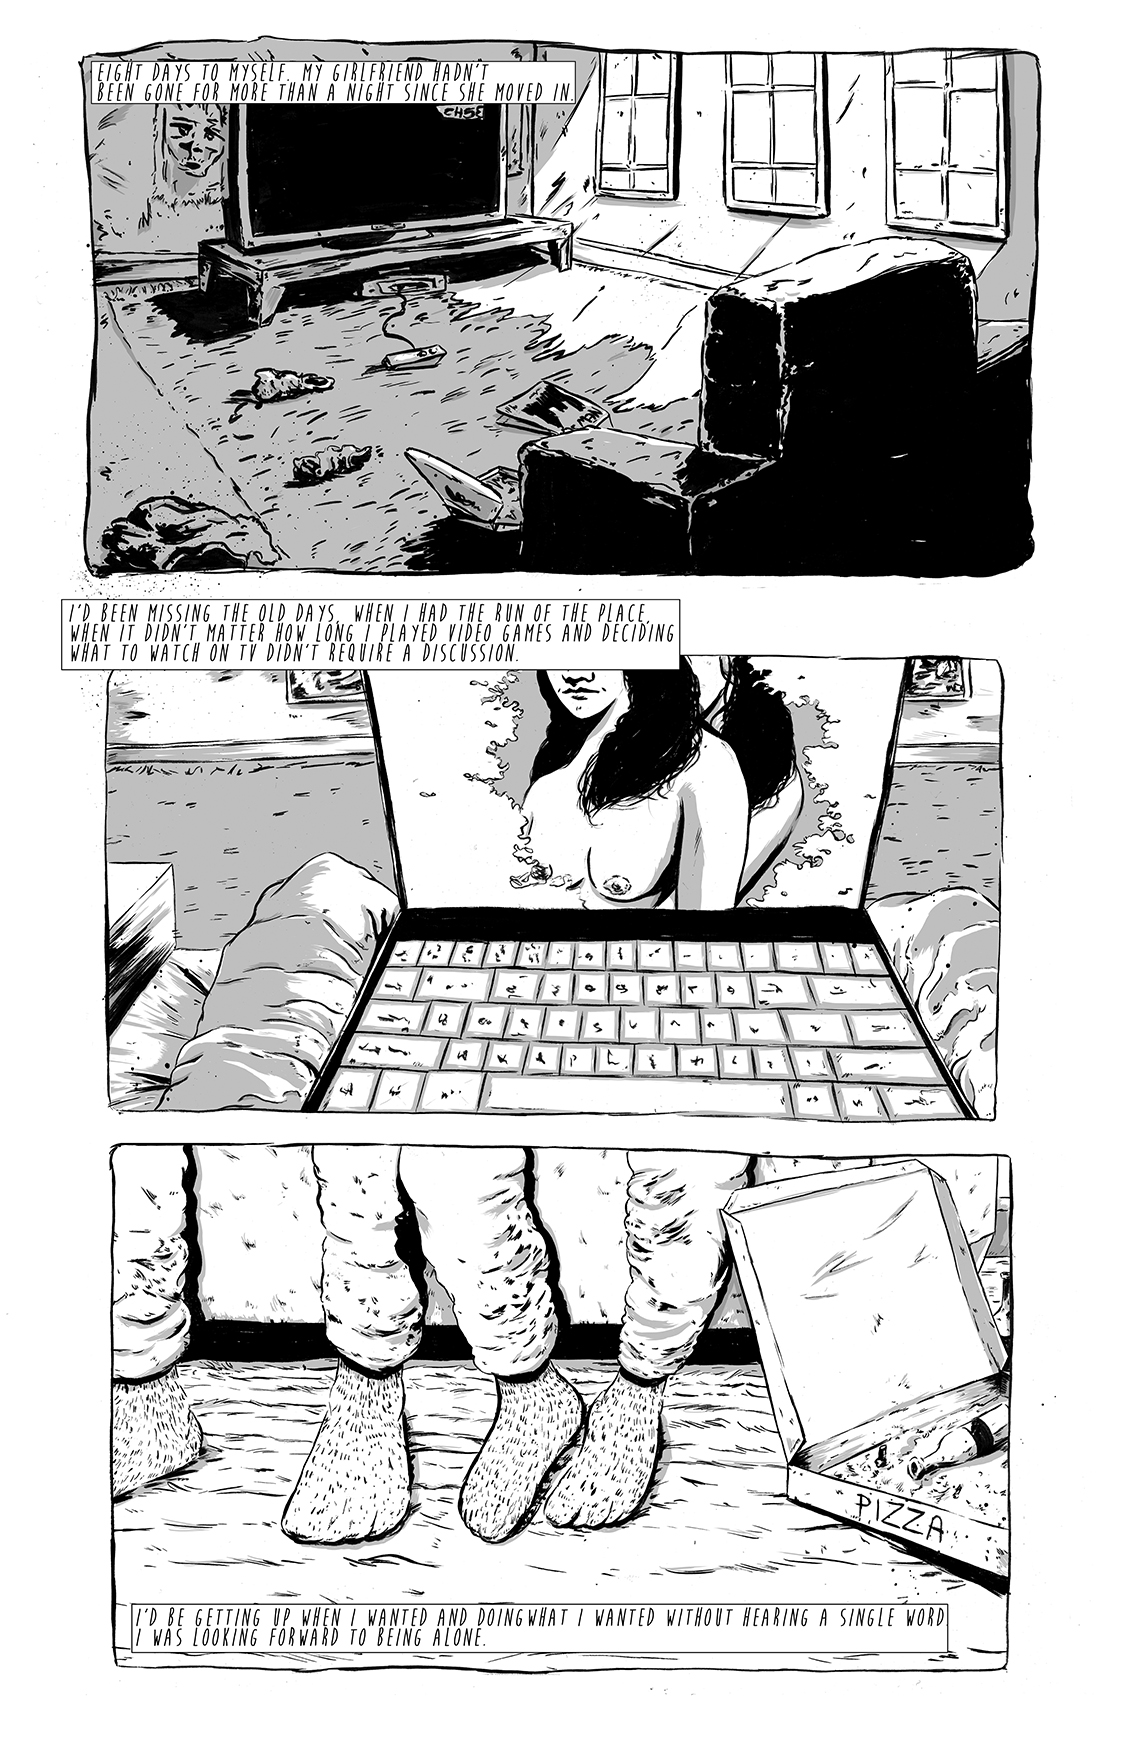 Eight Days Alone, page 3, by Sam Costello and Matthew Goik